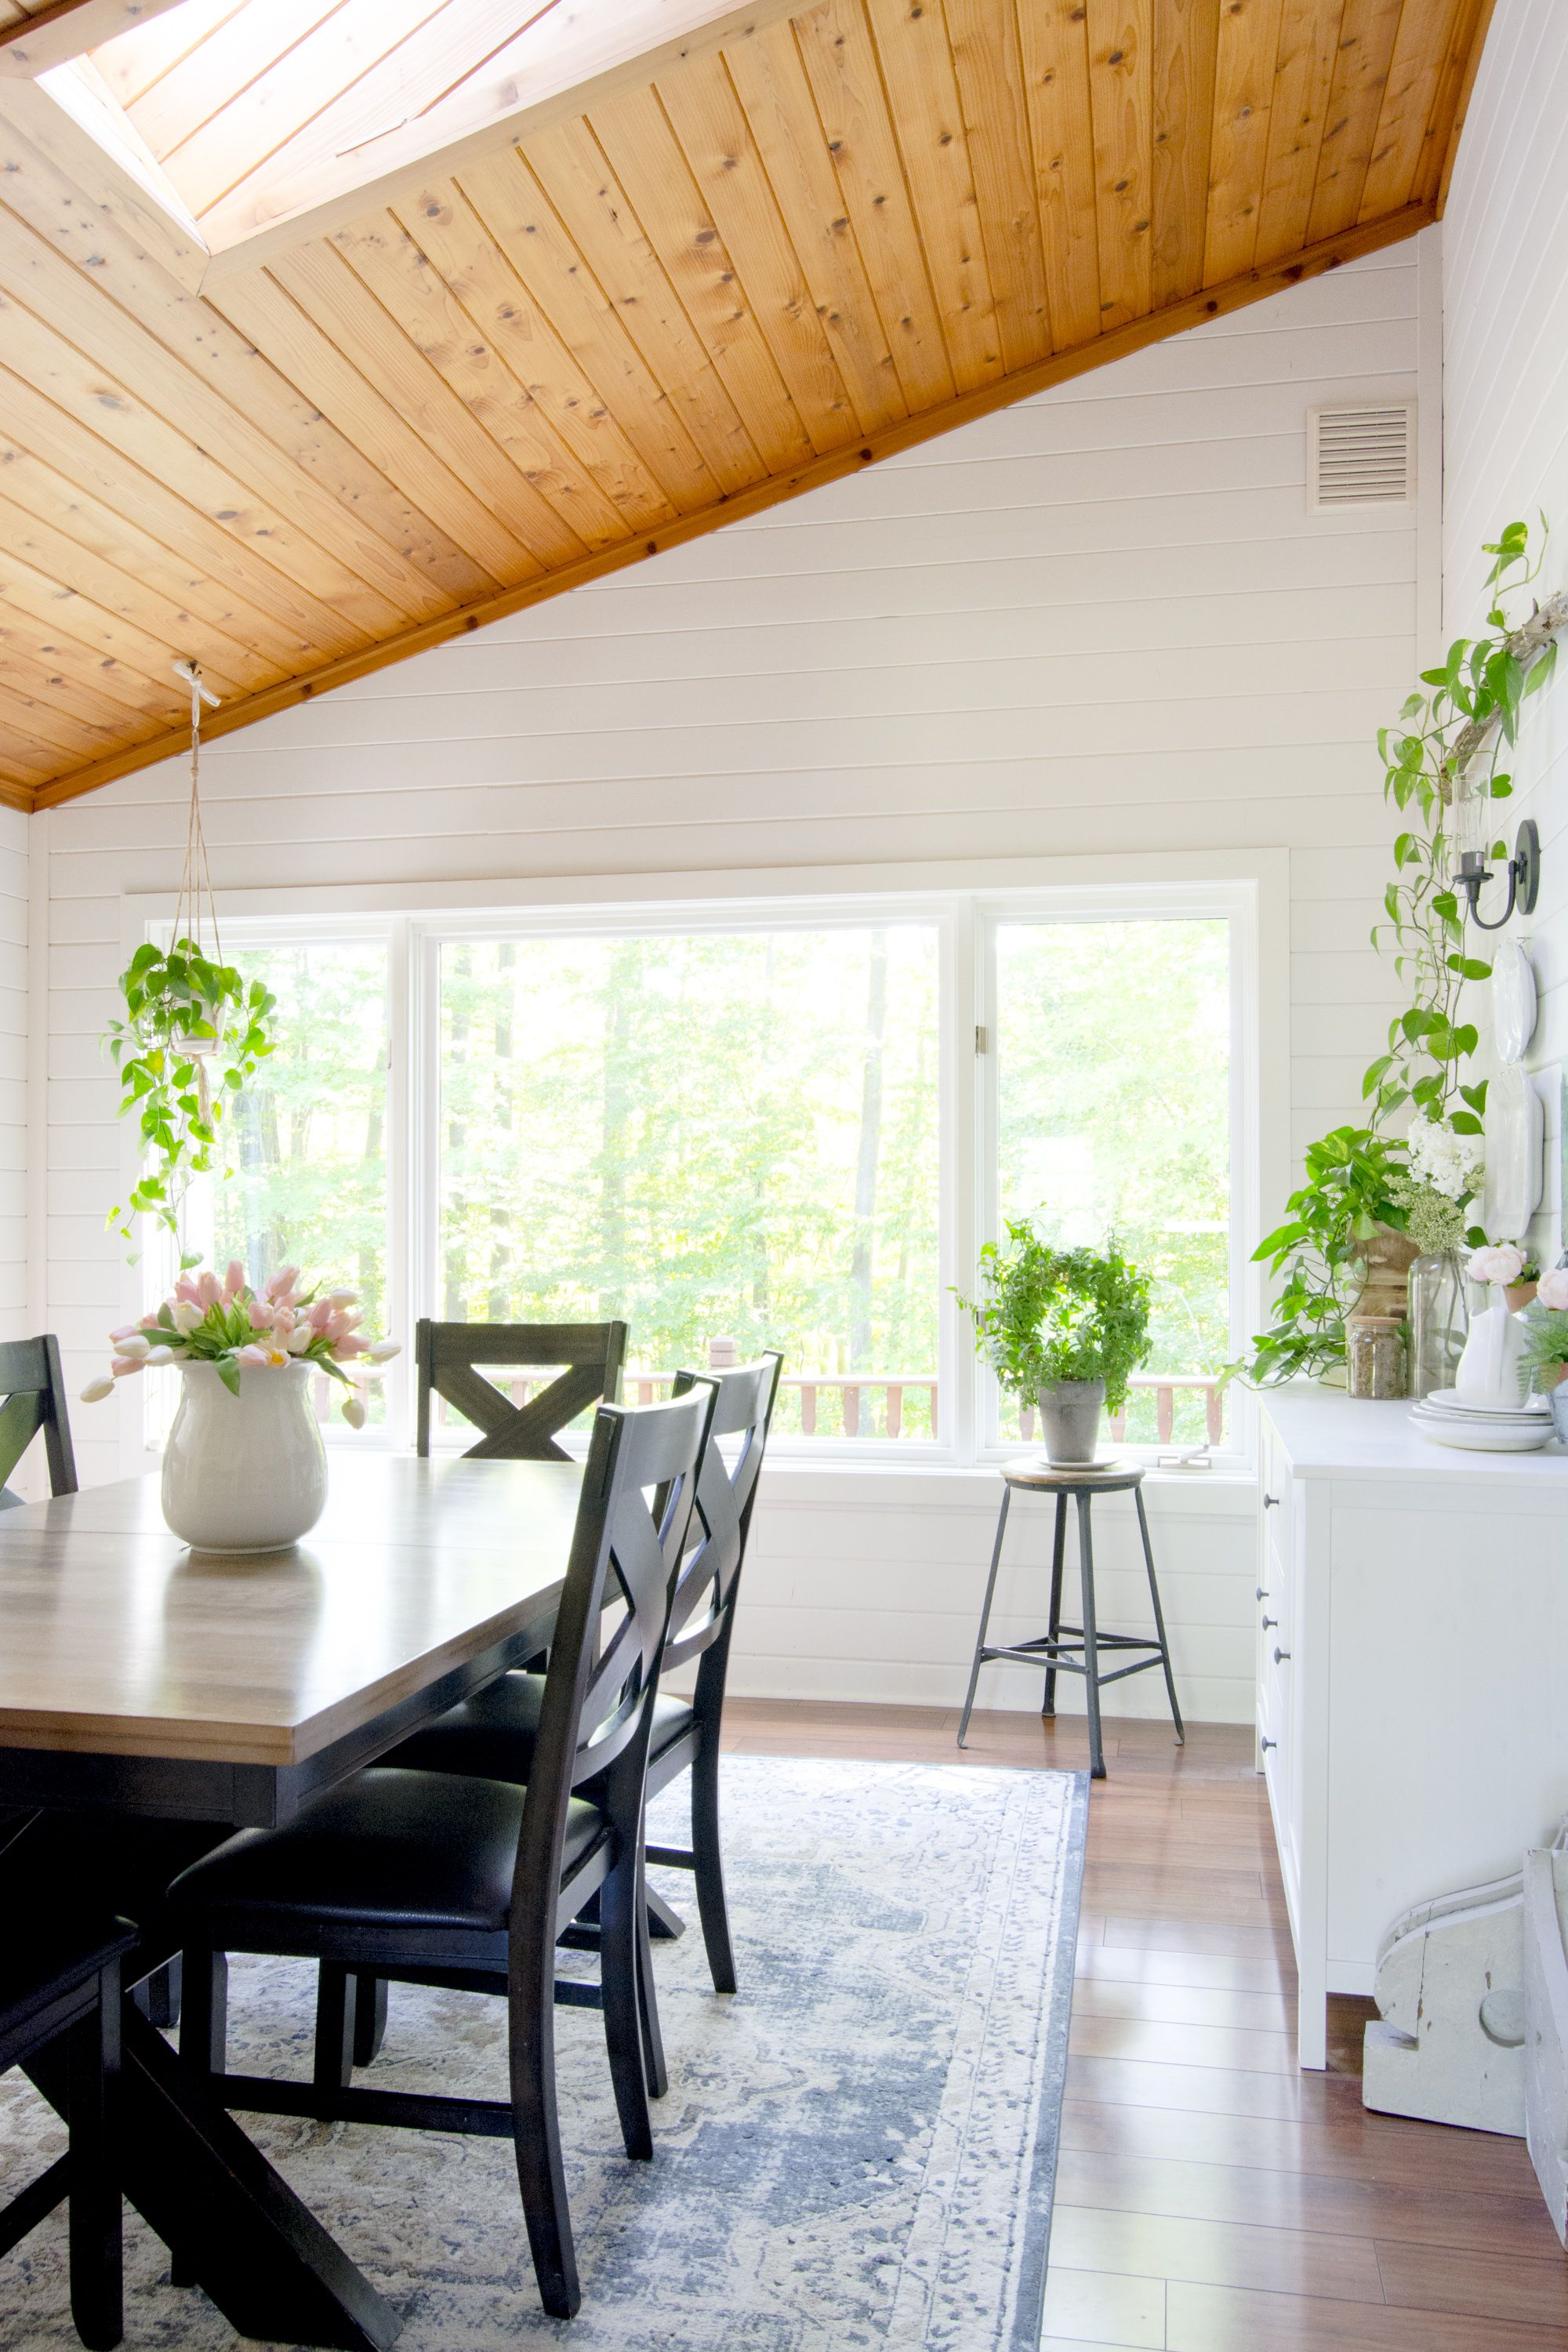 How To Paint Window Trim Without Tape Window Trim Window Painting Stylish Dining Room